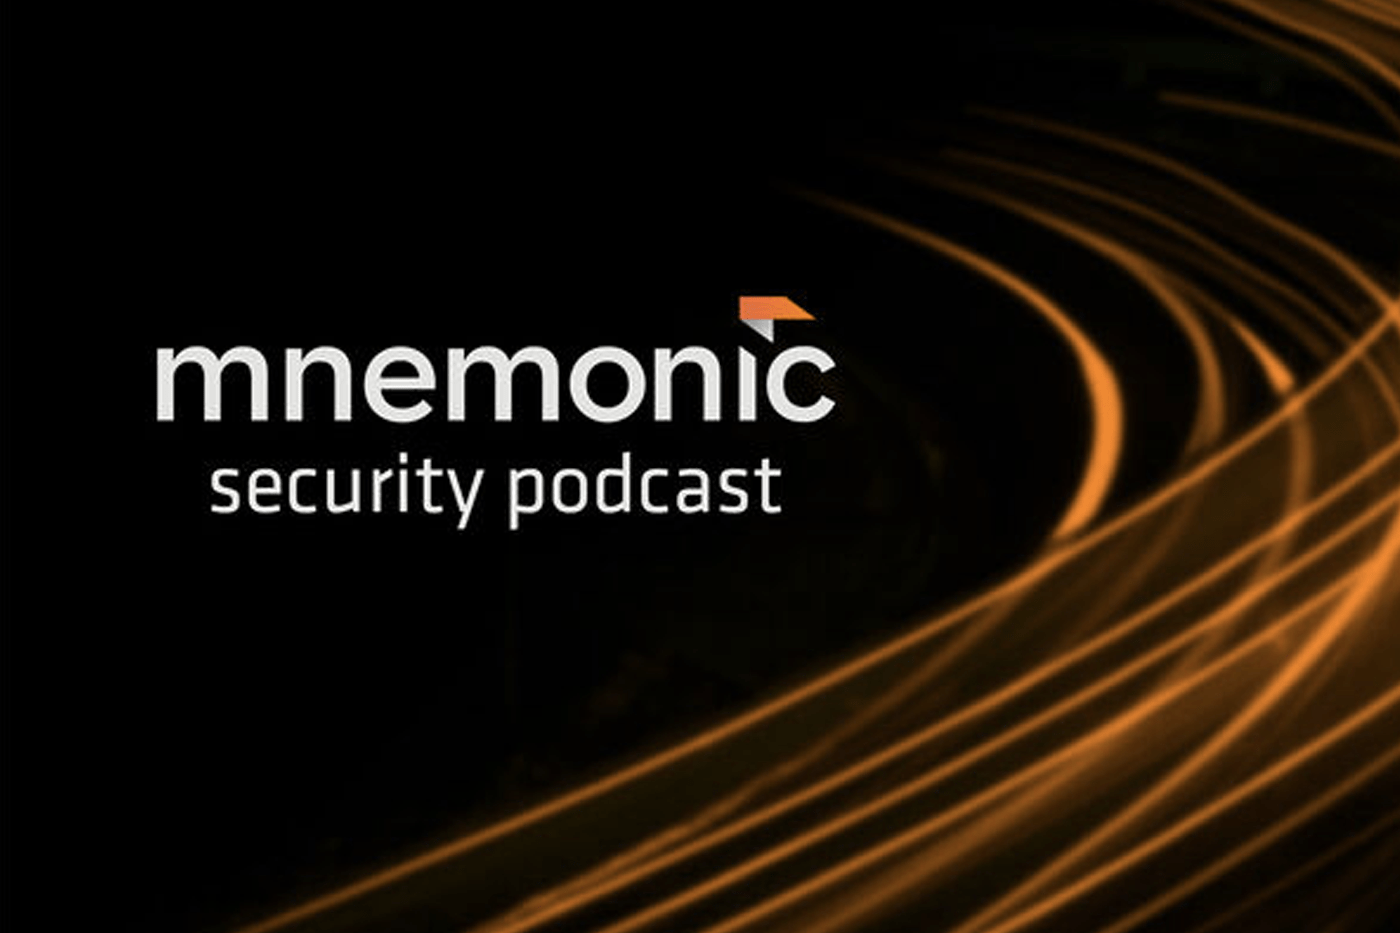 You Can't Protect What You Don't Have | Mnemonic Security Podcast